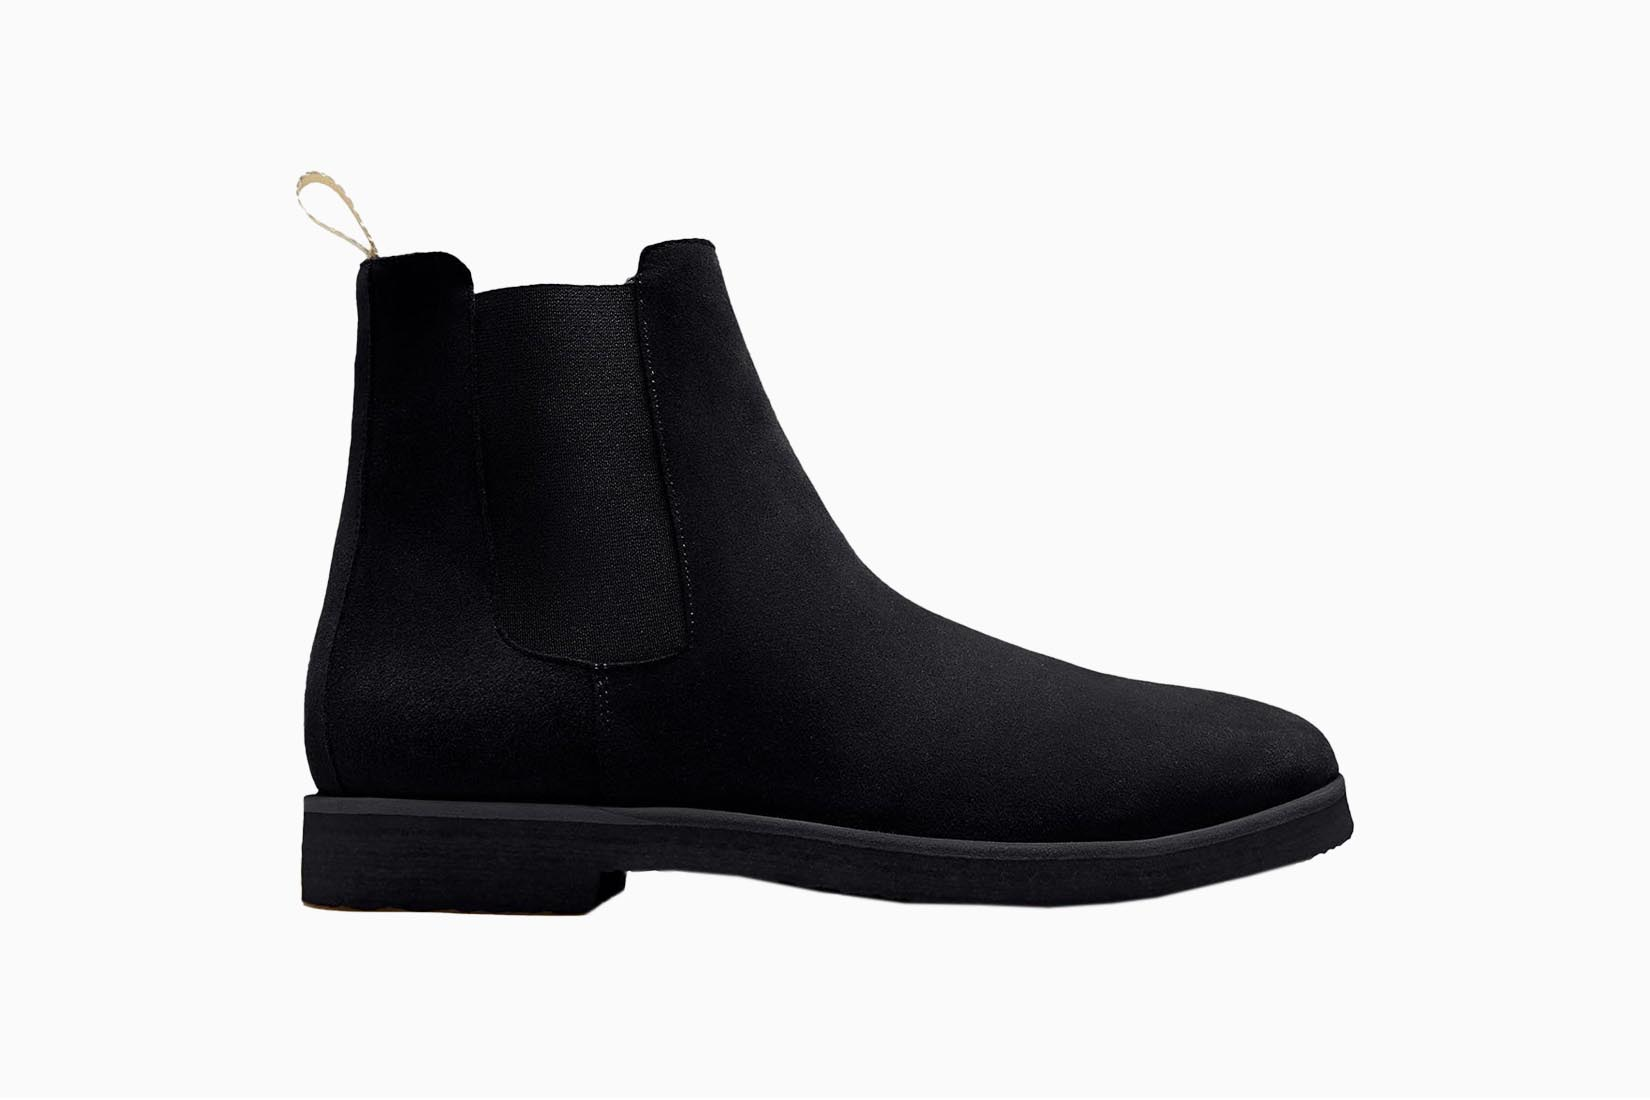 best boots men oliver cabell suede chelsea boot review Luxe Digital